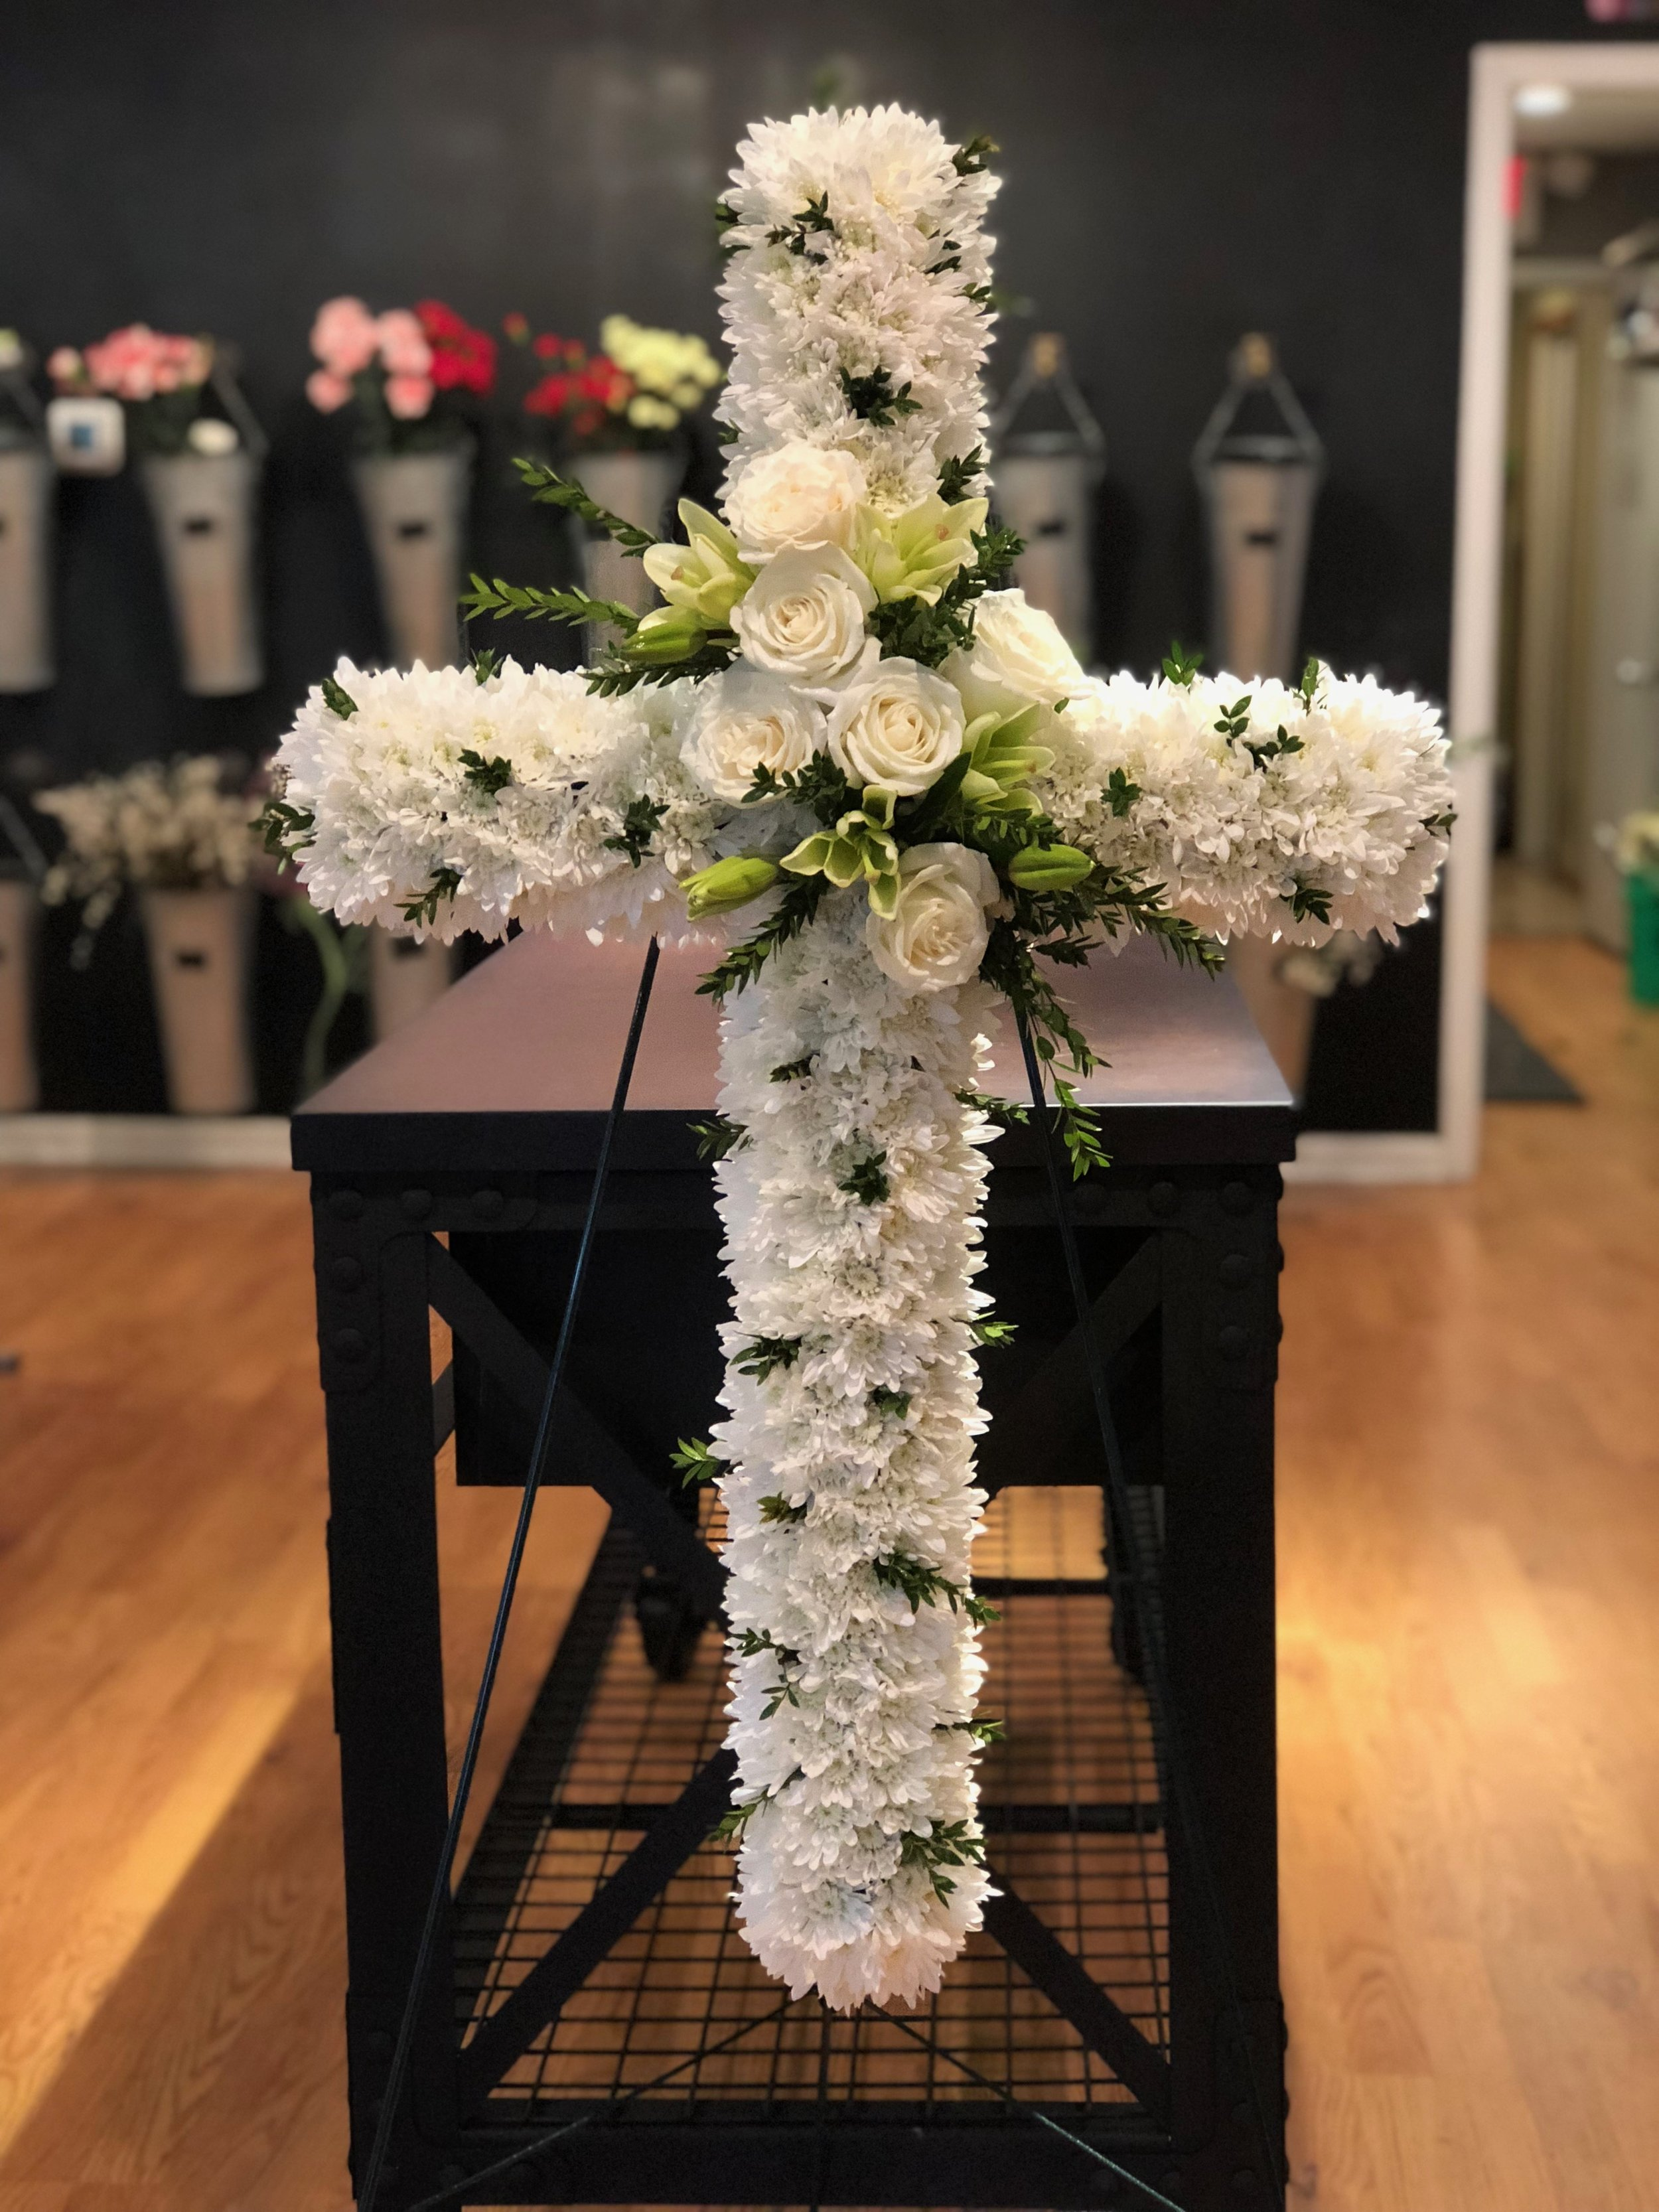 Easel Cross - $300.00White Poms, White Rose, White Asiatic Lily, Myrtle.